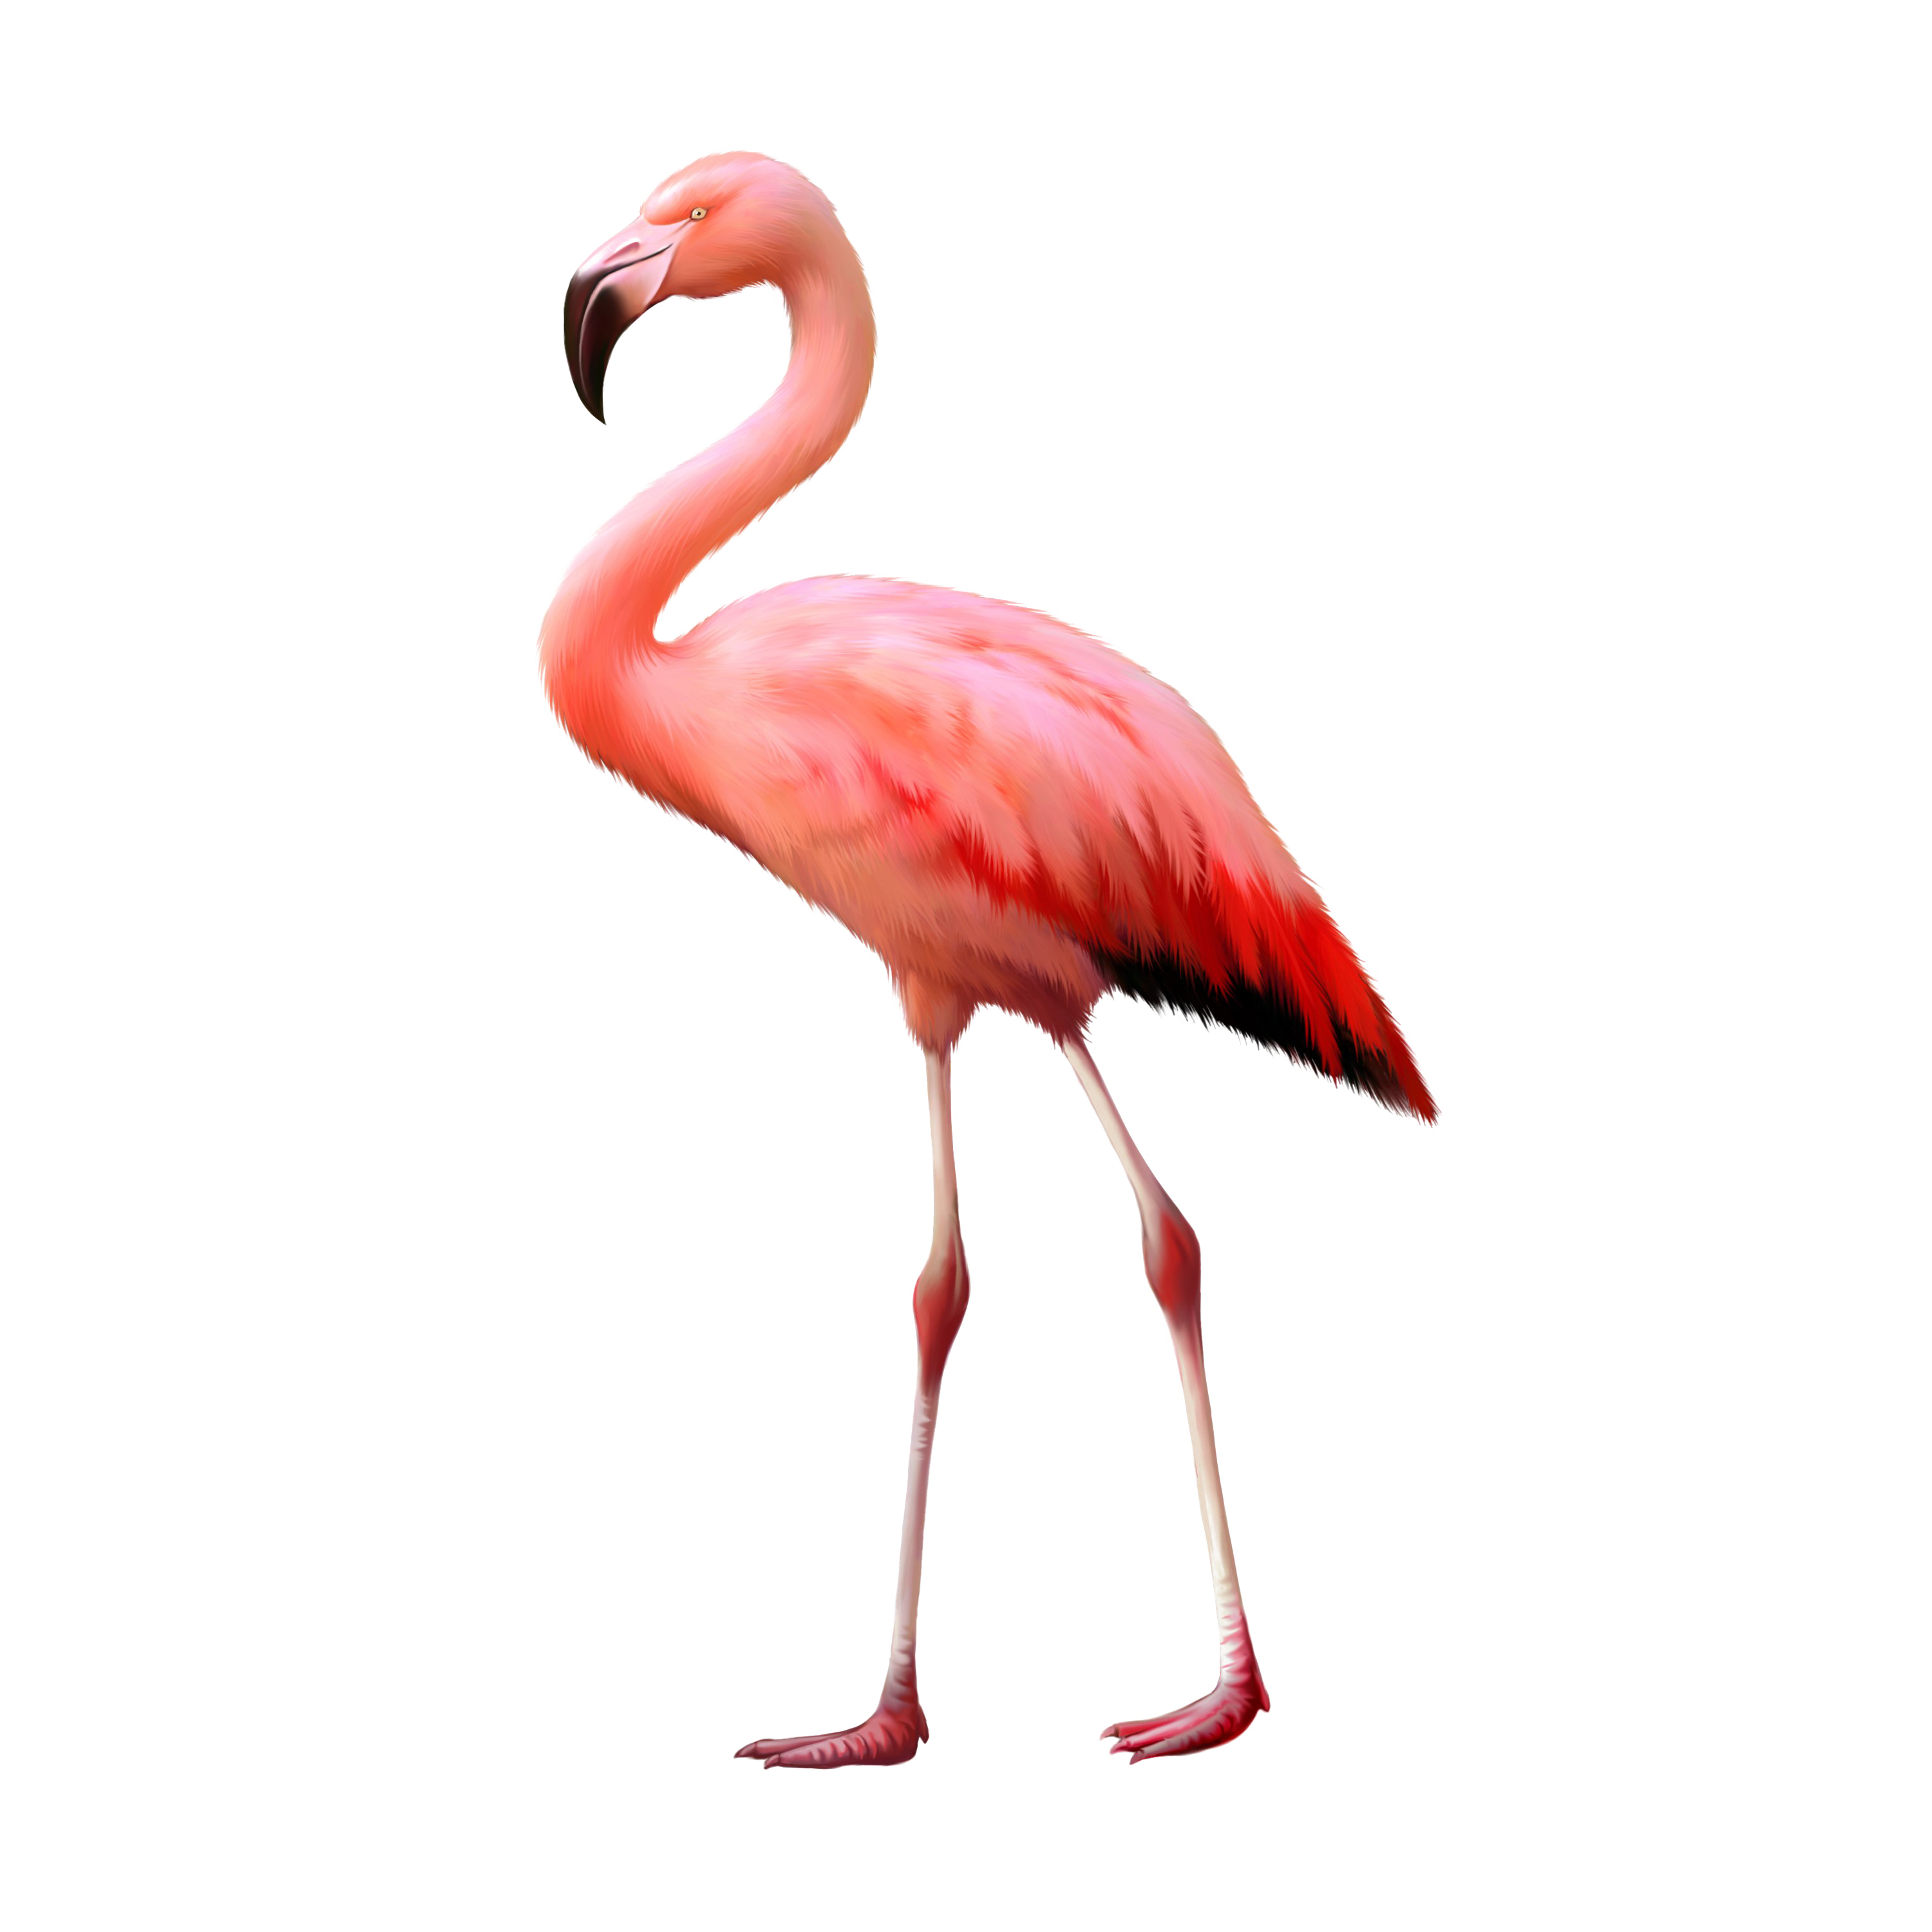 Flamingo-PNG-Background-Image (1).PNG